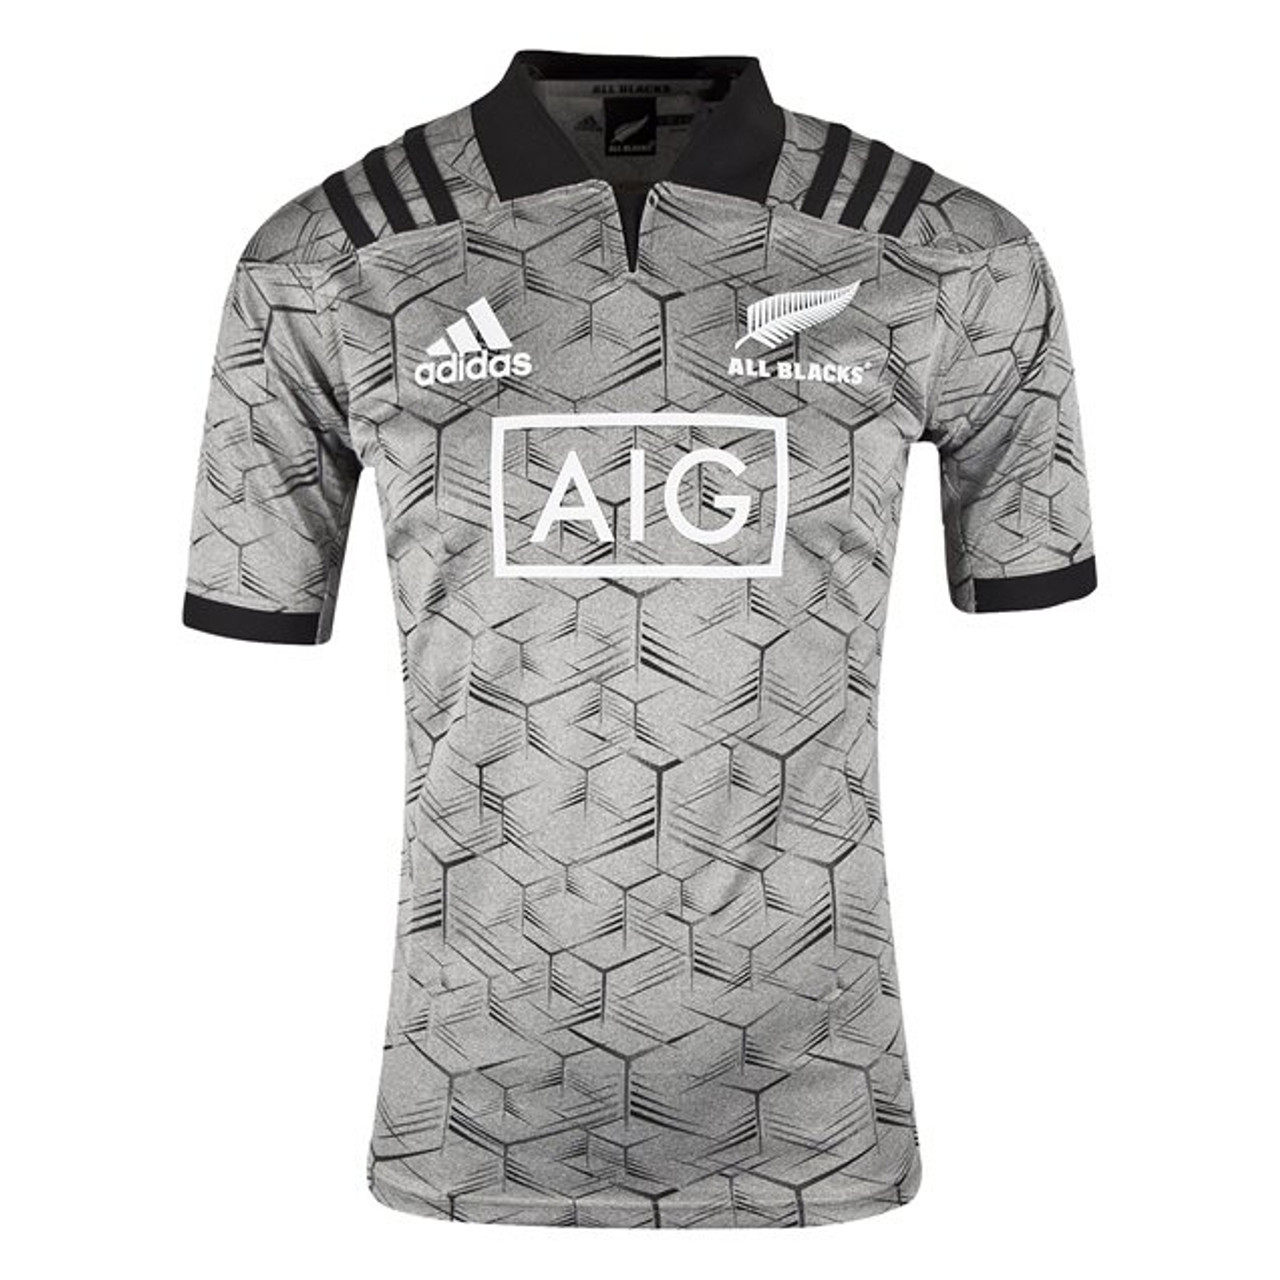 finest selection 89dc6 6f819 New Zealand All Blacks Training Jersey 2018/19